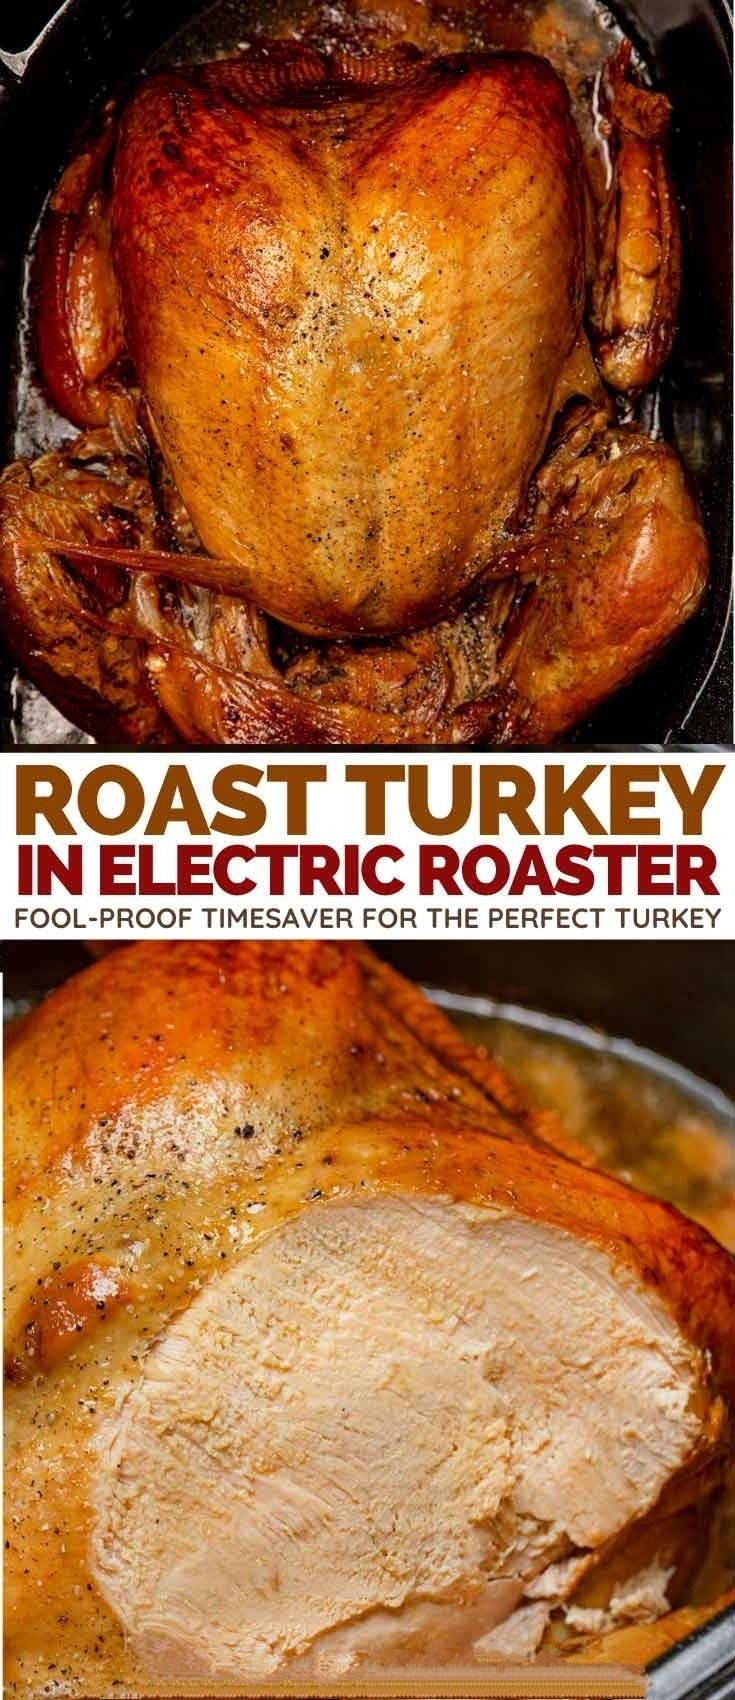 How long to cook turkey in electric roaster